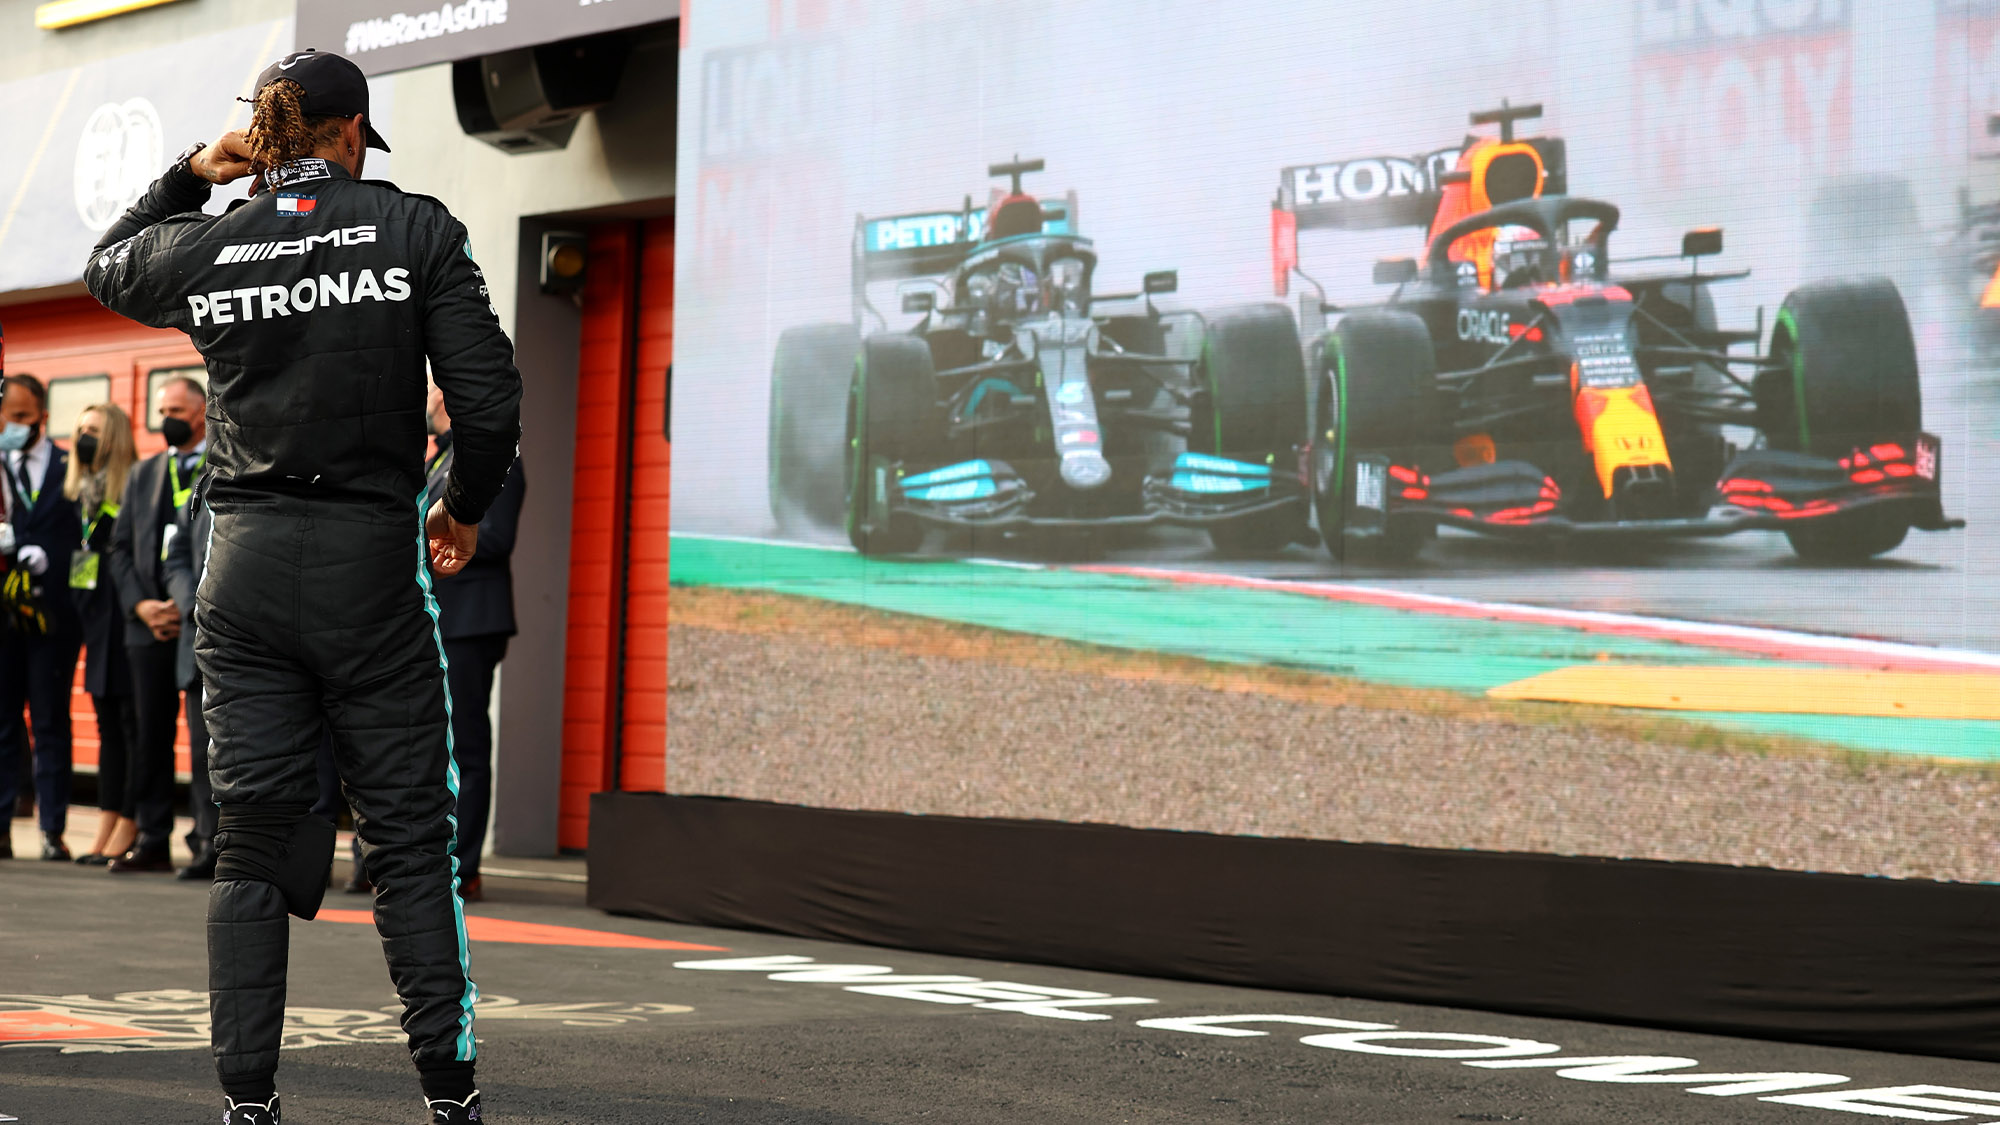 Lewis Hamilton watches his fight with Max Verstappen at the 2021 Emilia Romagna Grand Prix